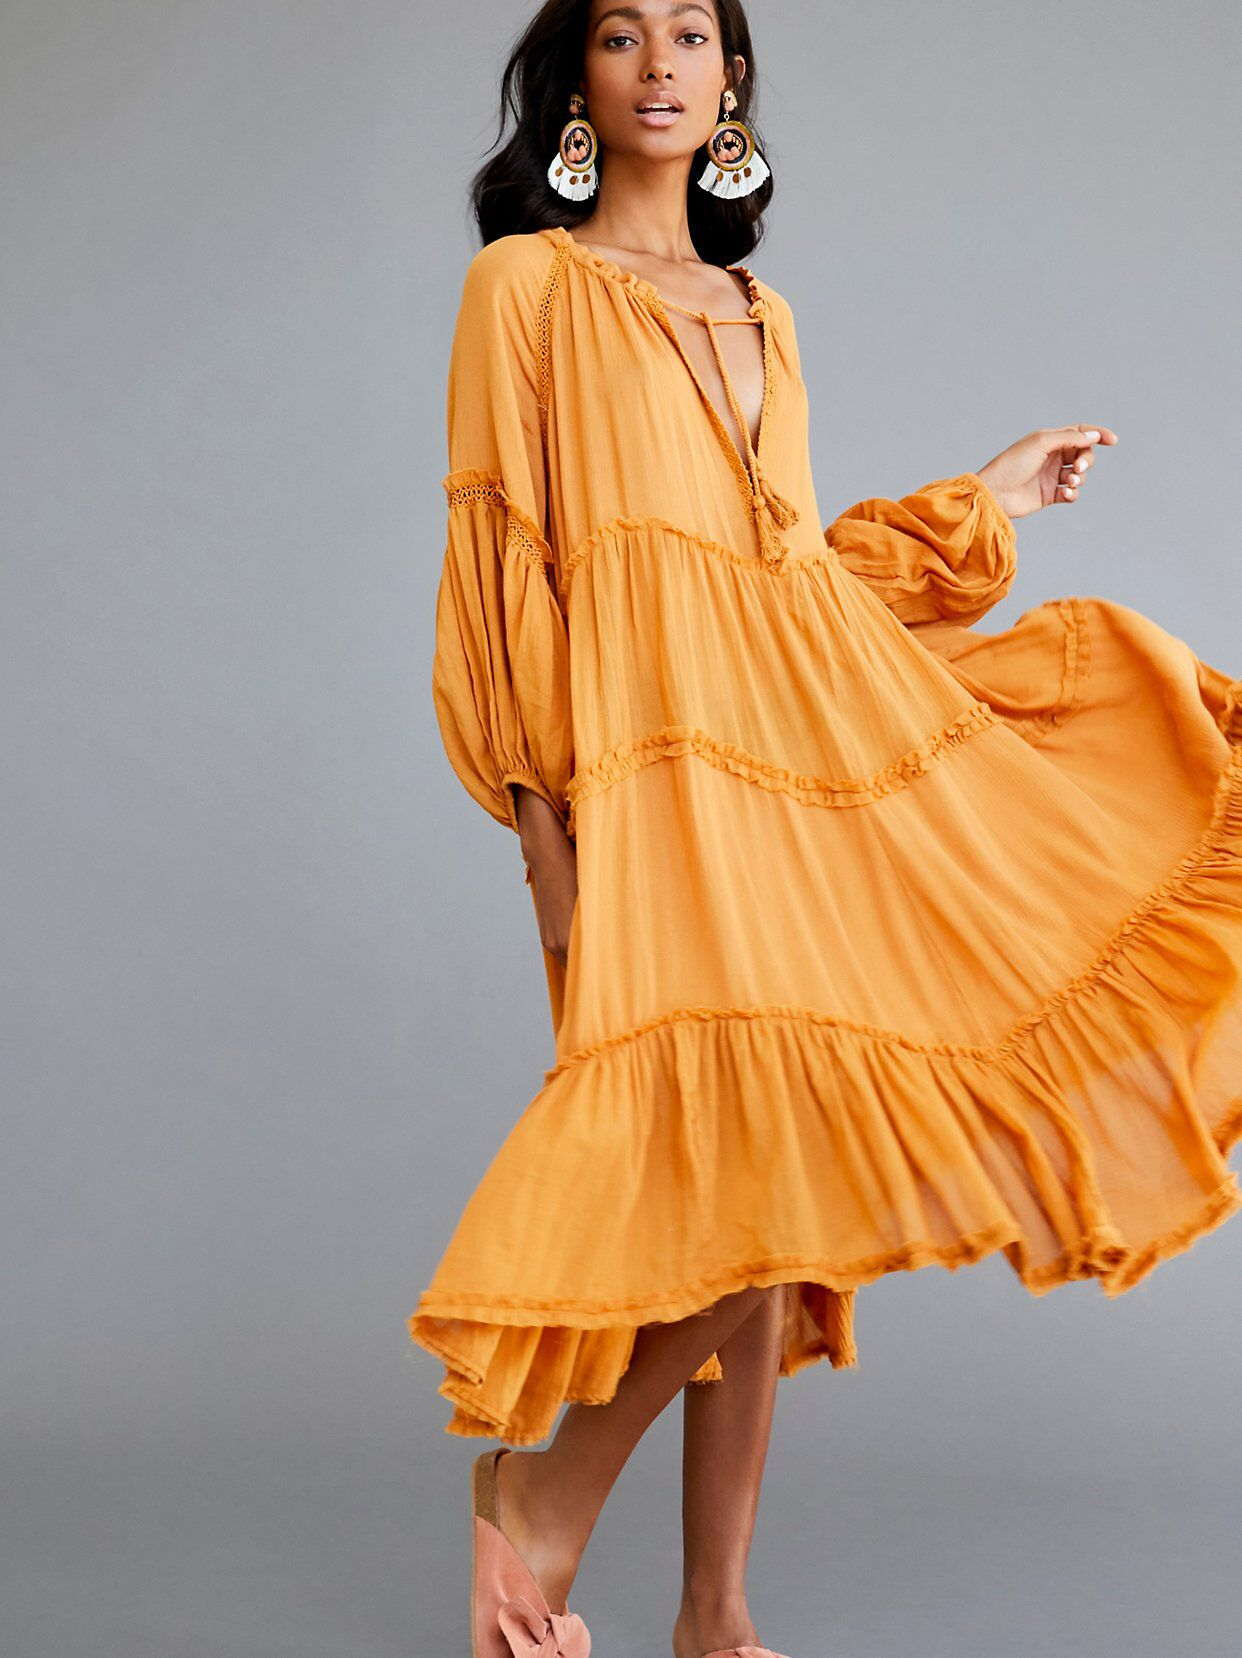 830bd4601441 The Endless Summer In The Moment Dress in 2019